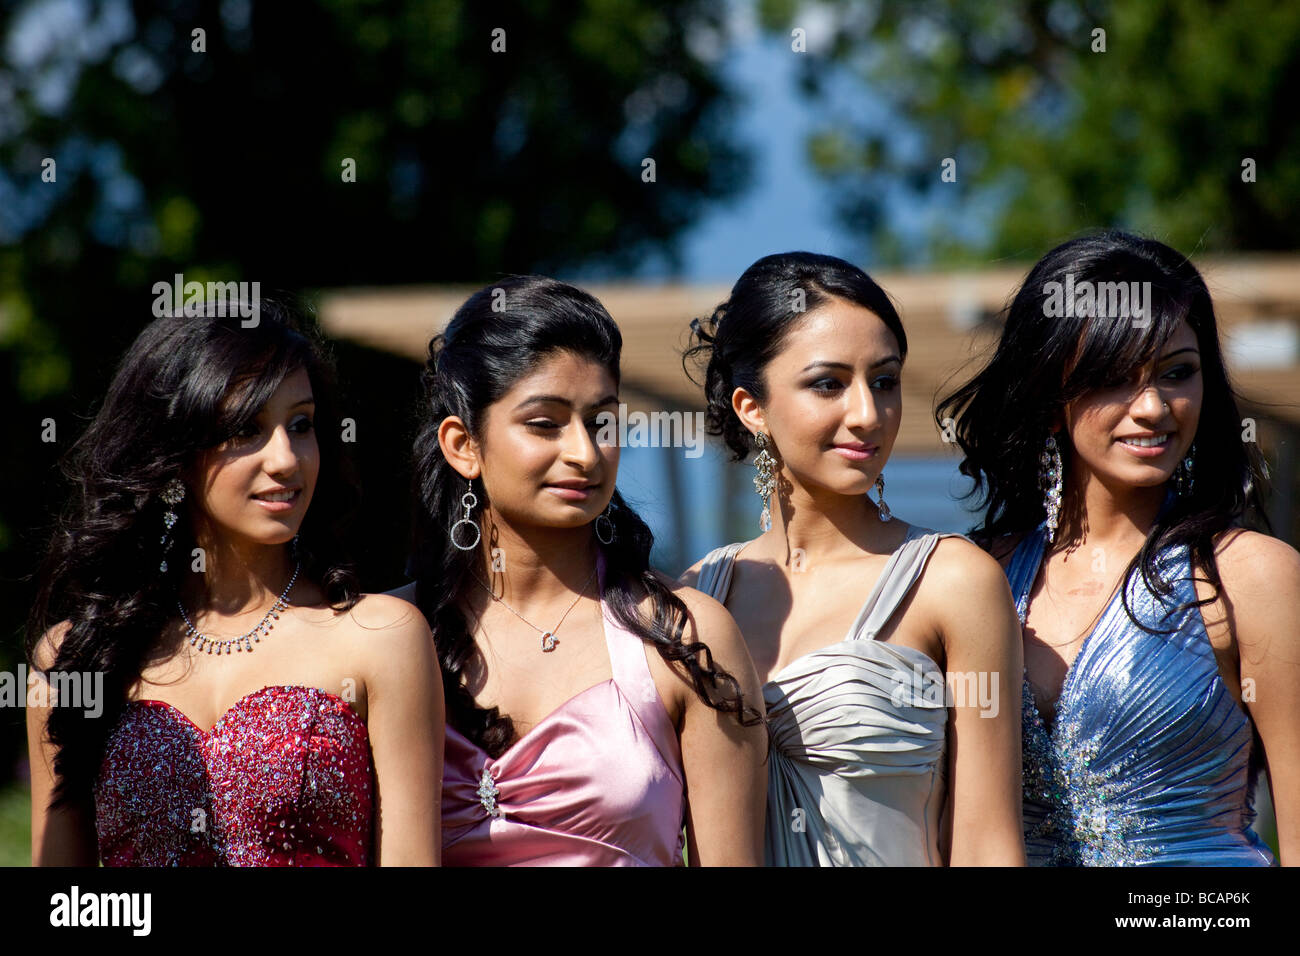 students in formal dress for school prom posing for photographs at ...